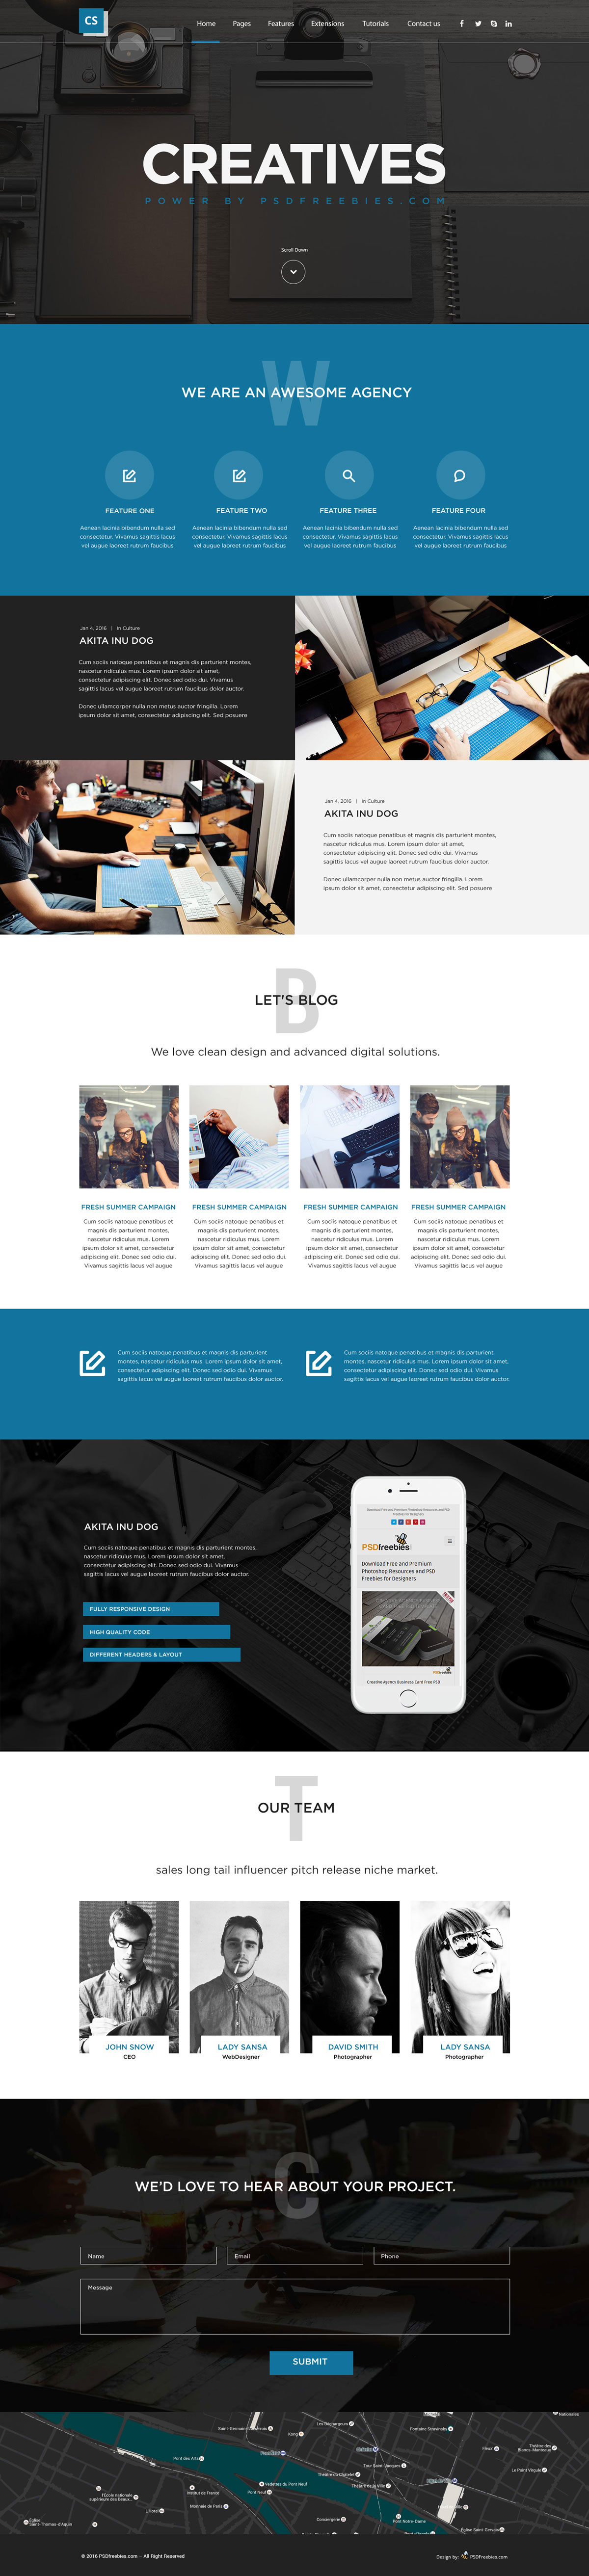 Creative Digital Agency Website Template | Free HTML5 Templates